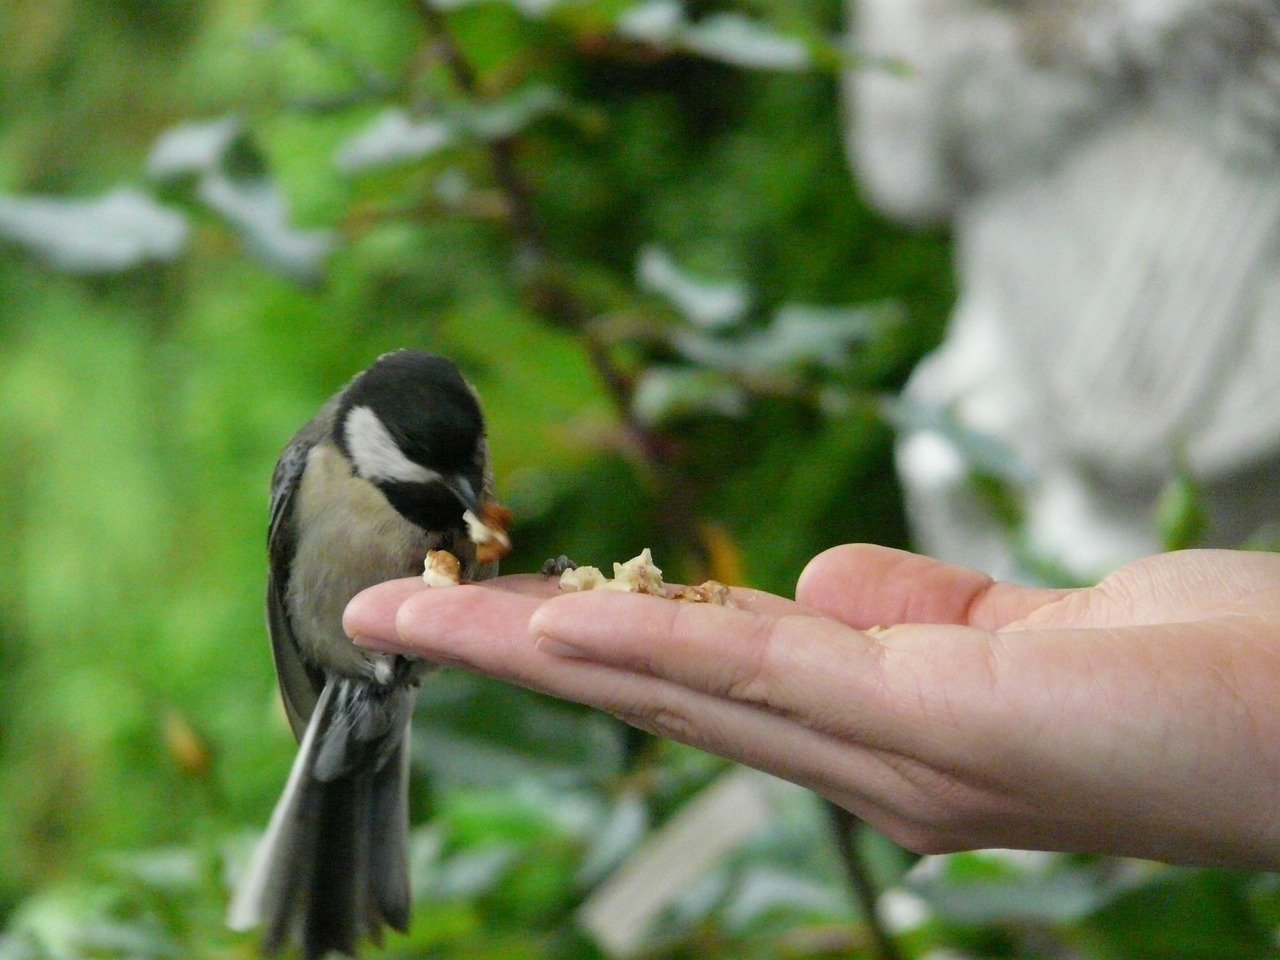 https//pixabay.com/en/tit-bird-hand-food-feeding-58615/